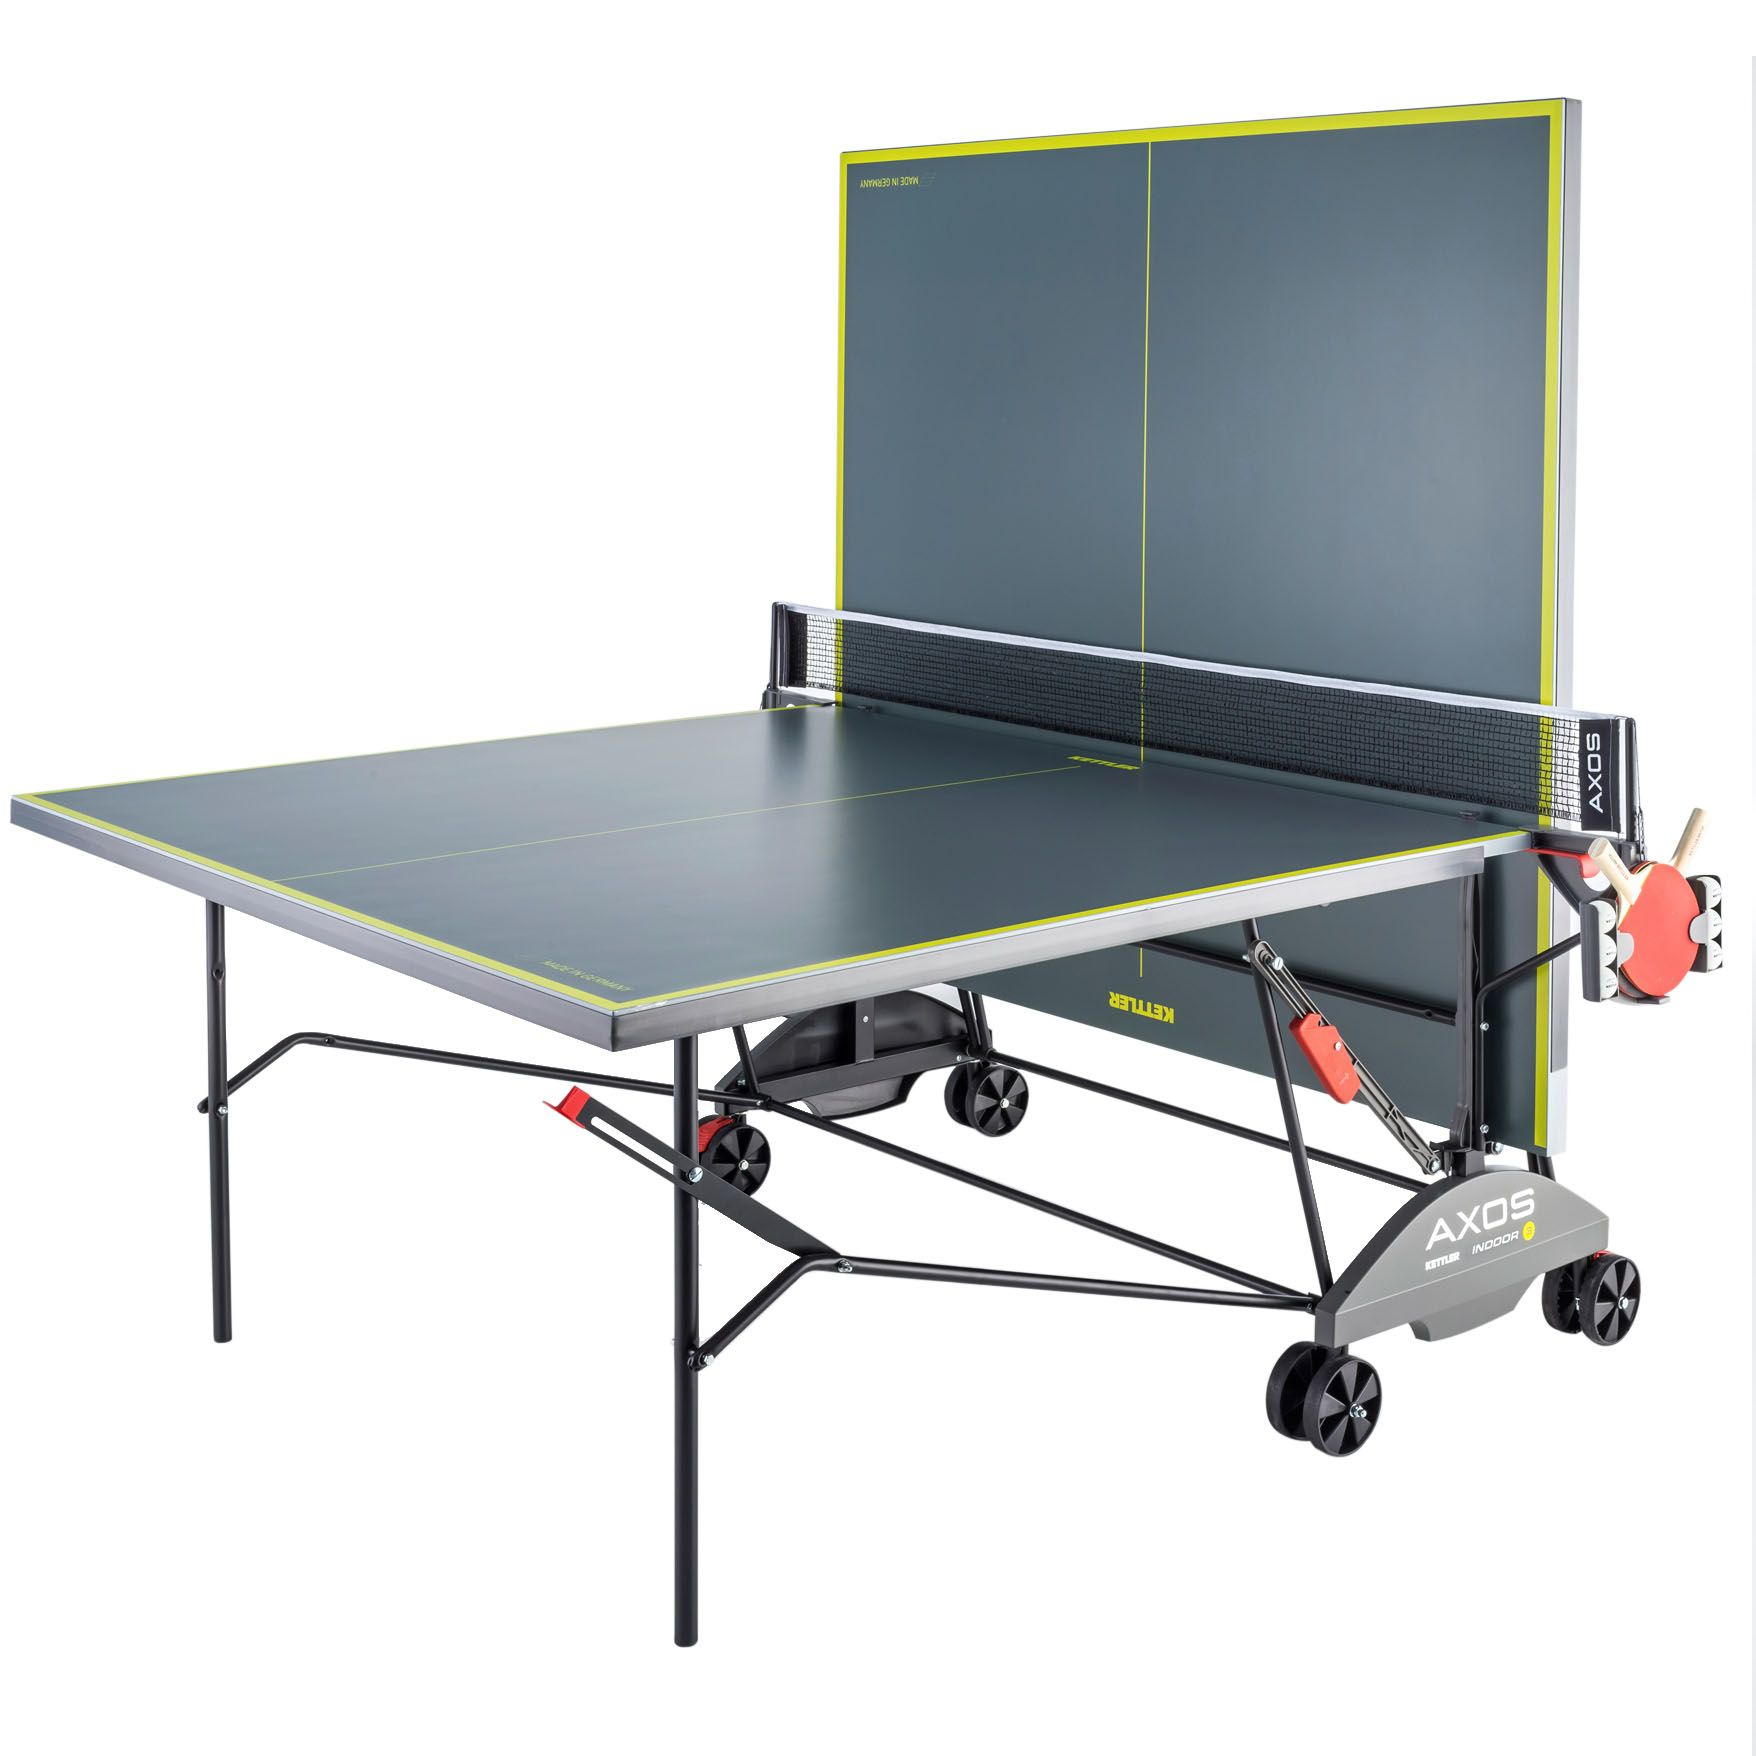 kettler axos 3 indoor table tennis table. Black Bedroom Furniture Sets. Home Design Ideas